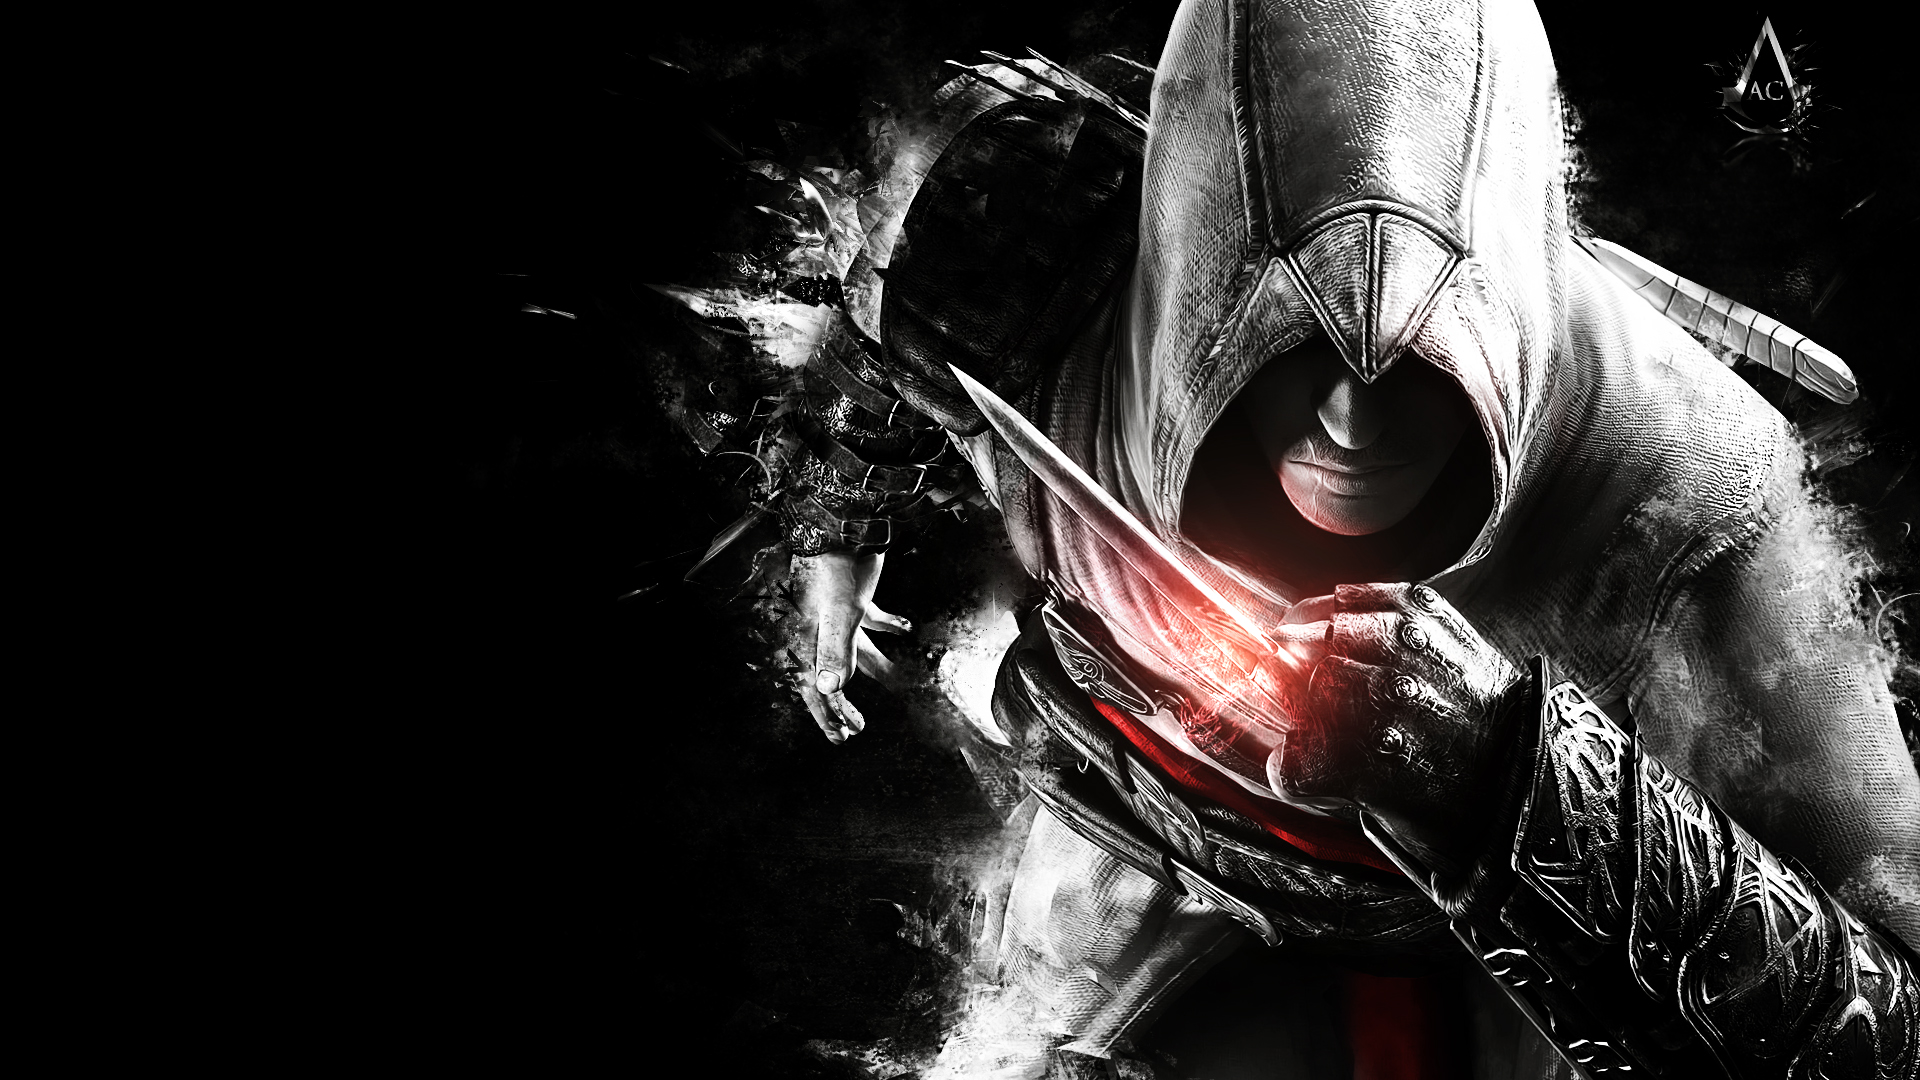 49 Hd Wallpapers Assassin S Creed On Wallpapersafari